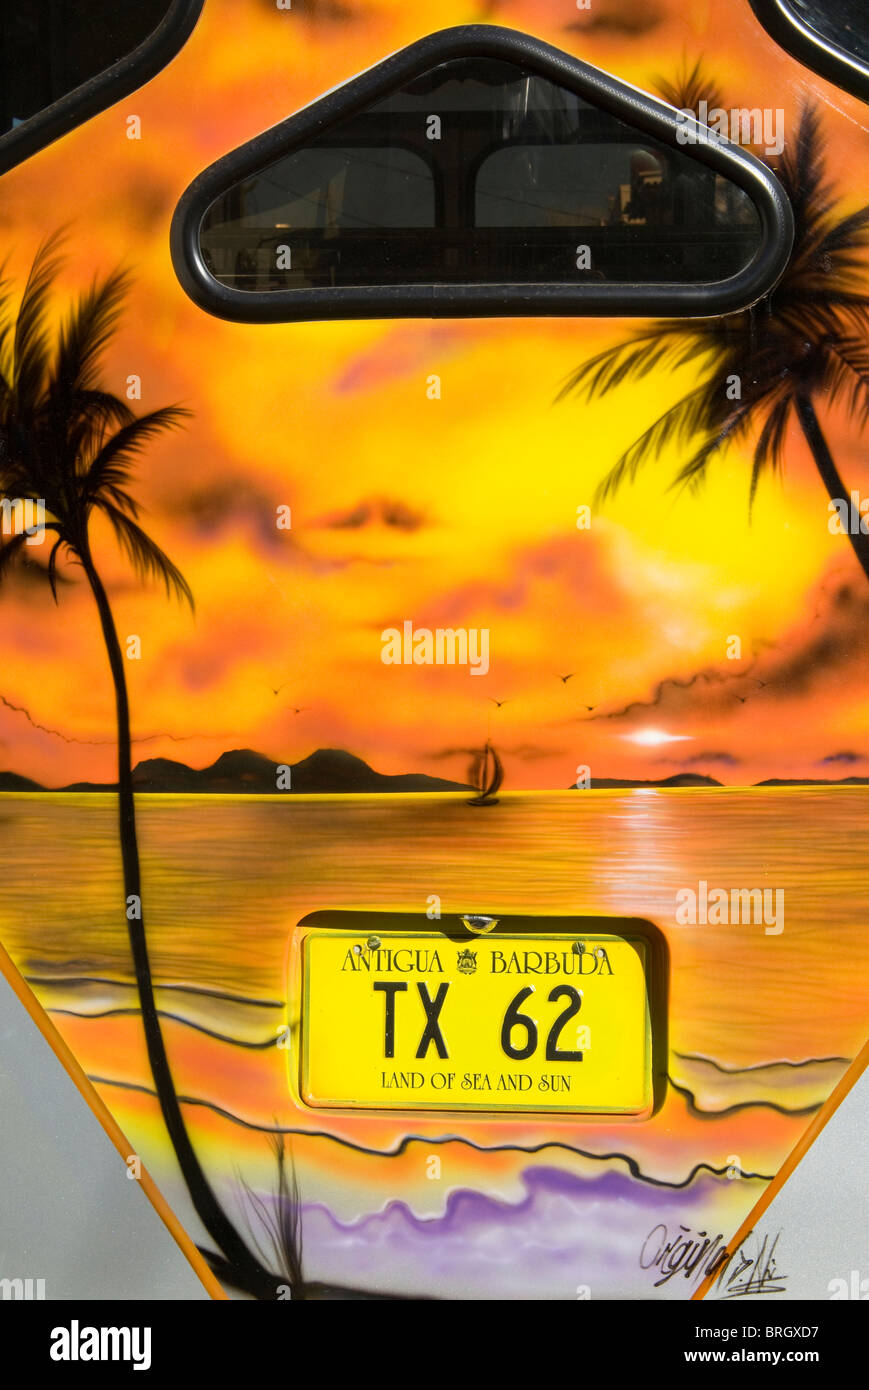 Car Plate, St.John's, Antigua, West Indies, Caribbean, Central America - Stock Image